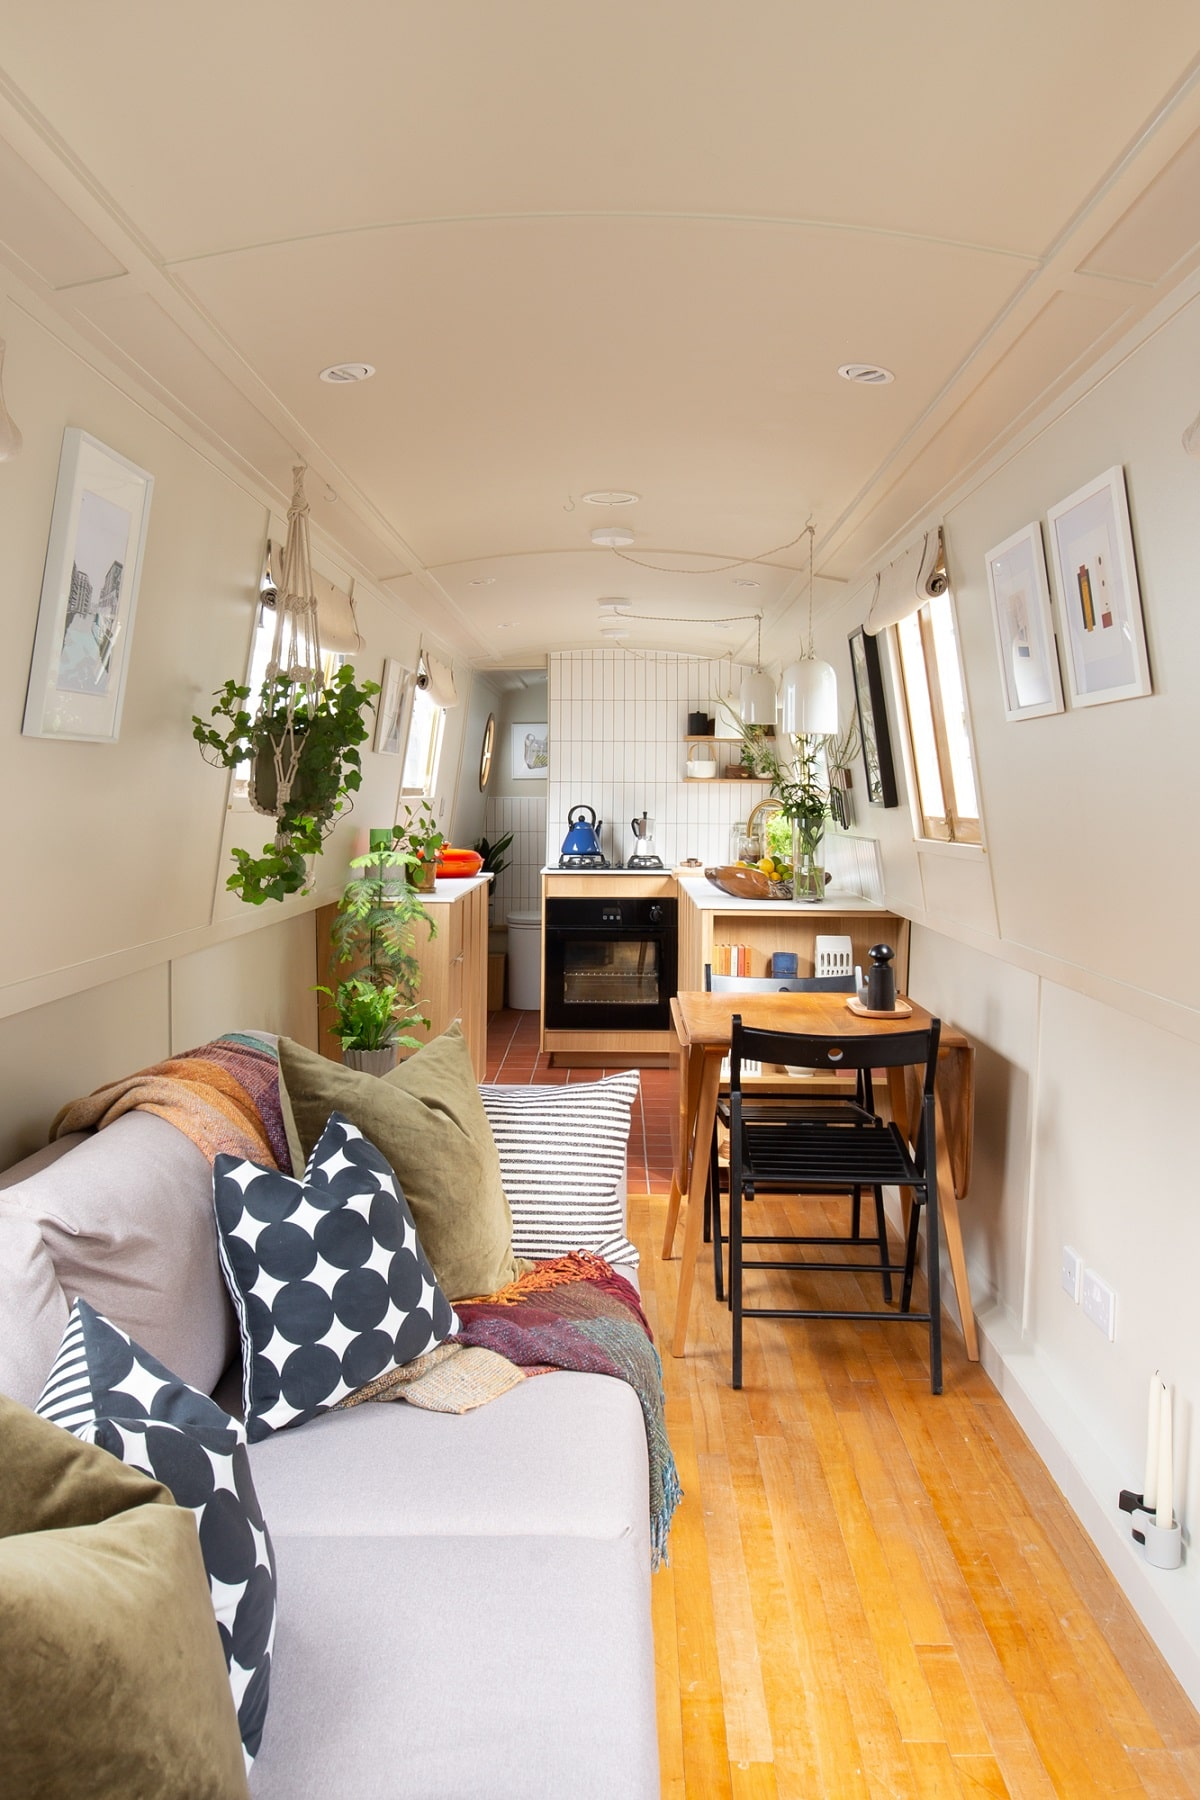 A Narrow but Stylish Houseboat in London